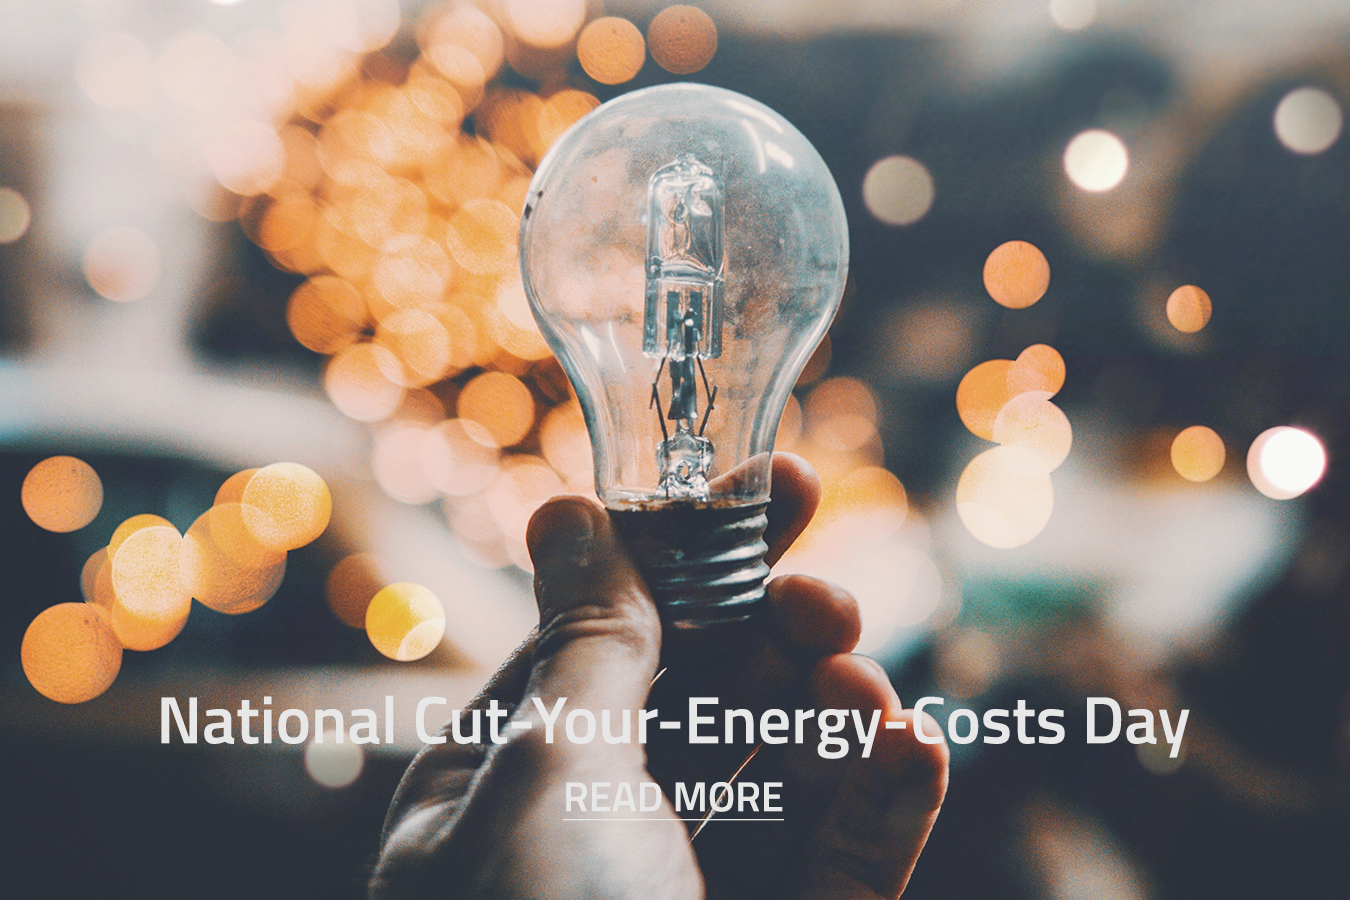 National Cut-your-energy-costs Day, Jan 28, 2019